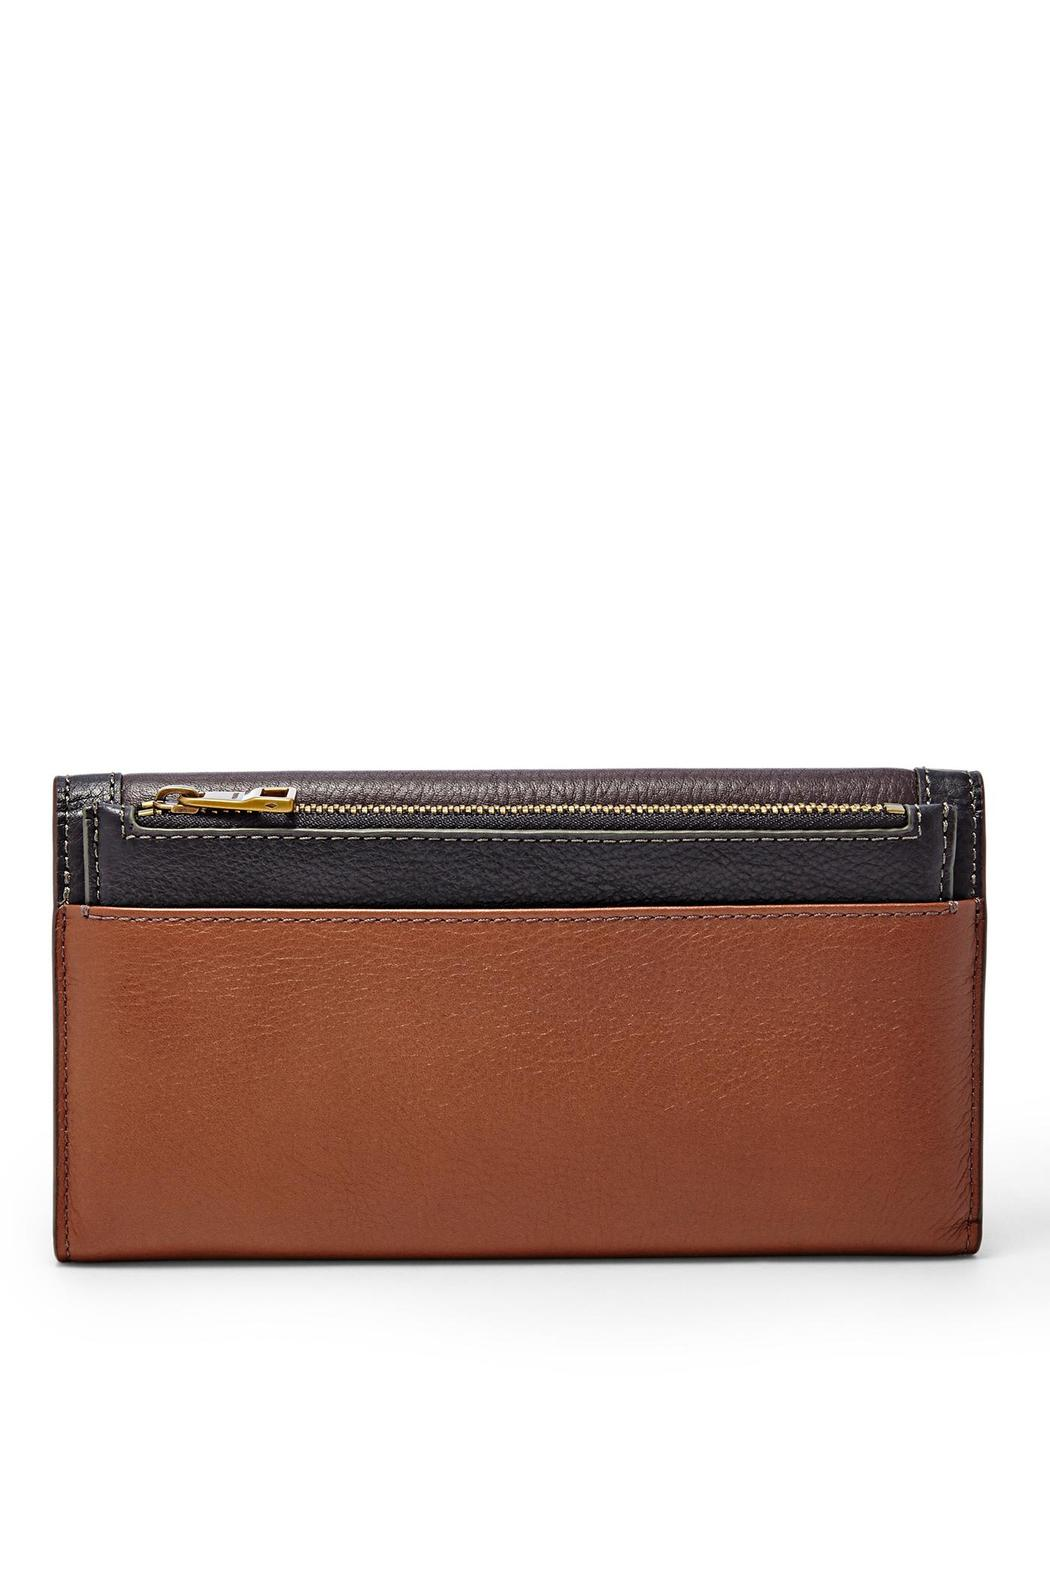 Fossil Emerson Clutch Multi - Front Full Image